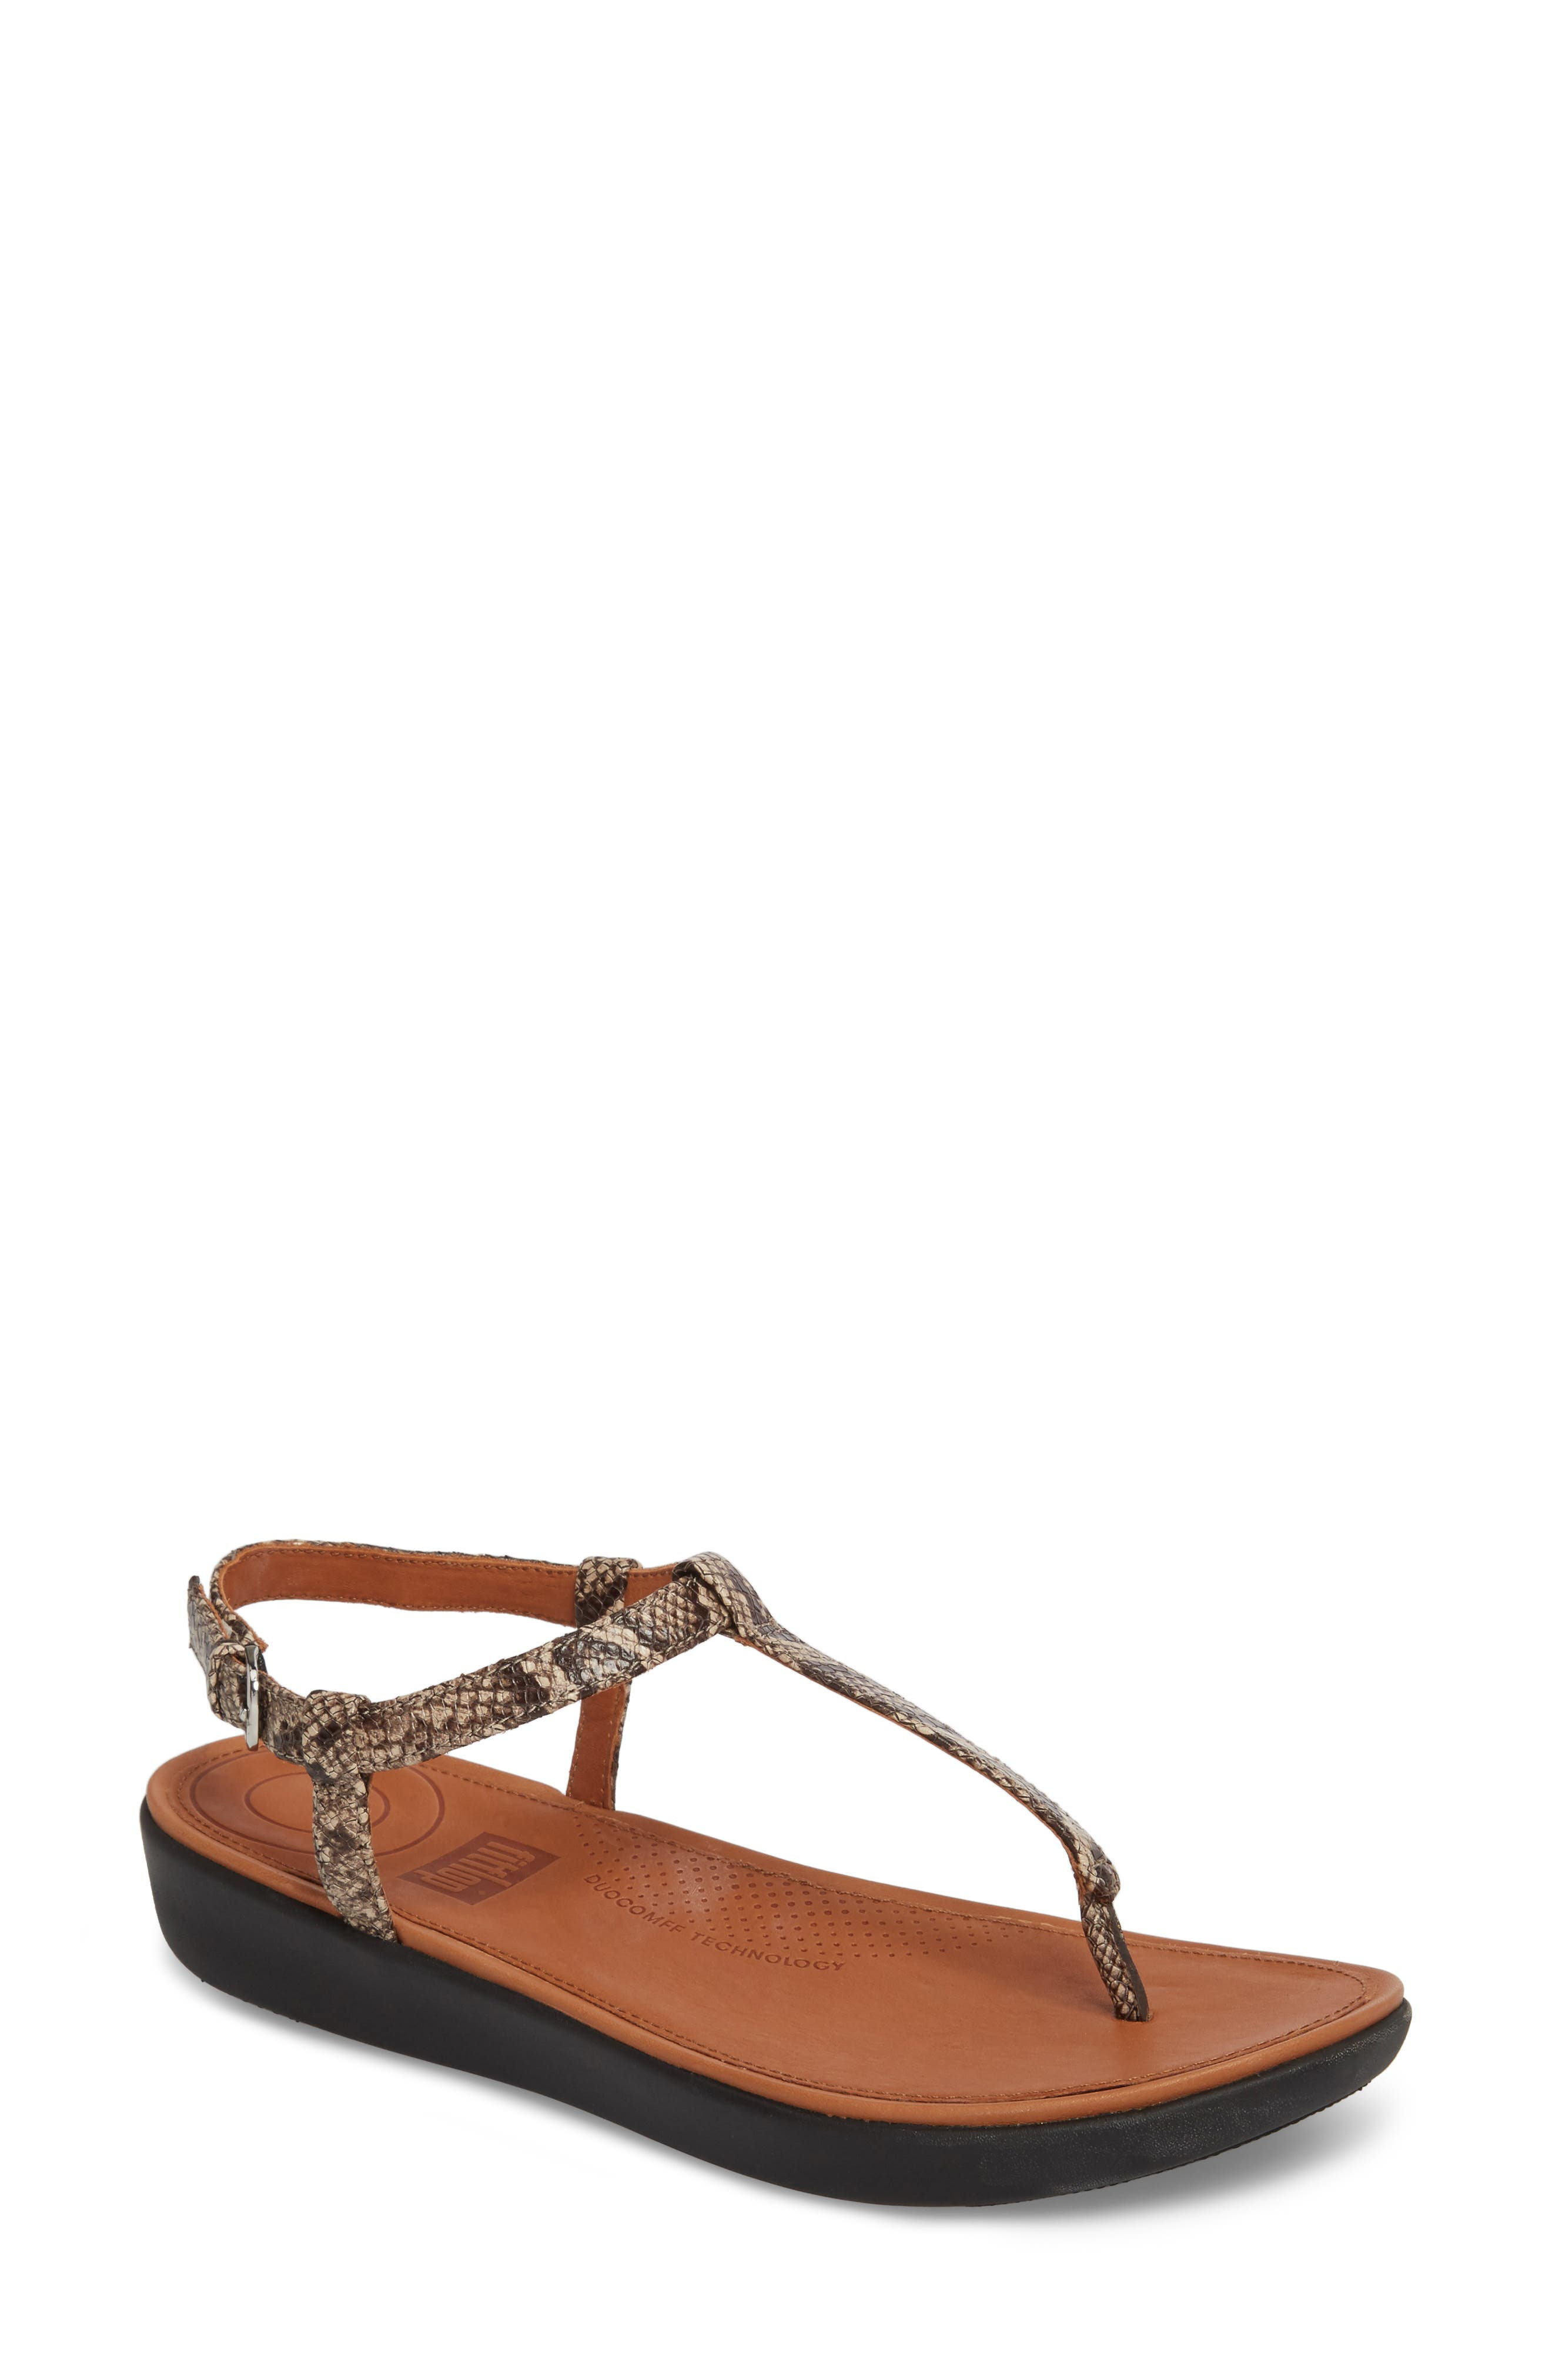 Alternate Image 1 Selected - FitFlop Tia Sandal (Women)